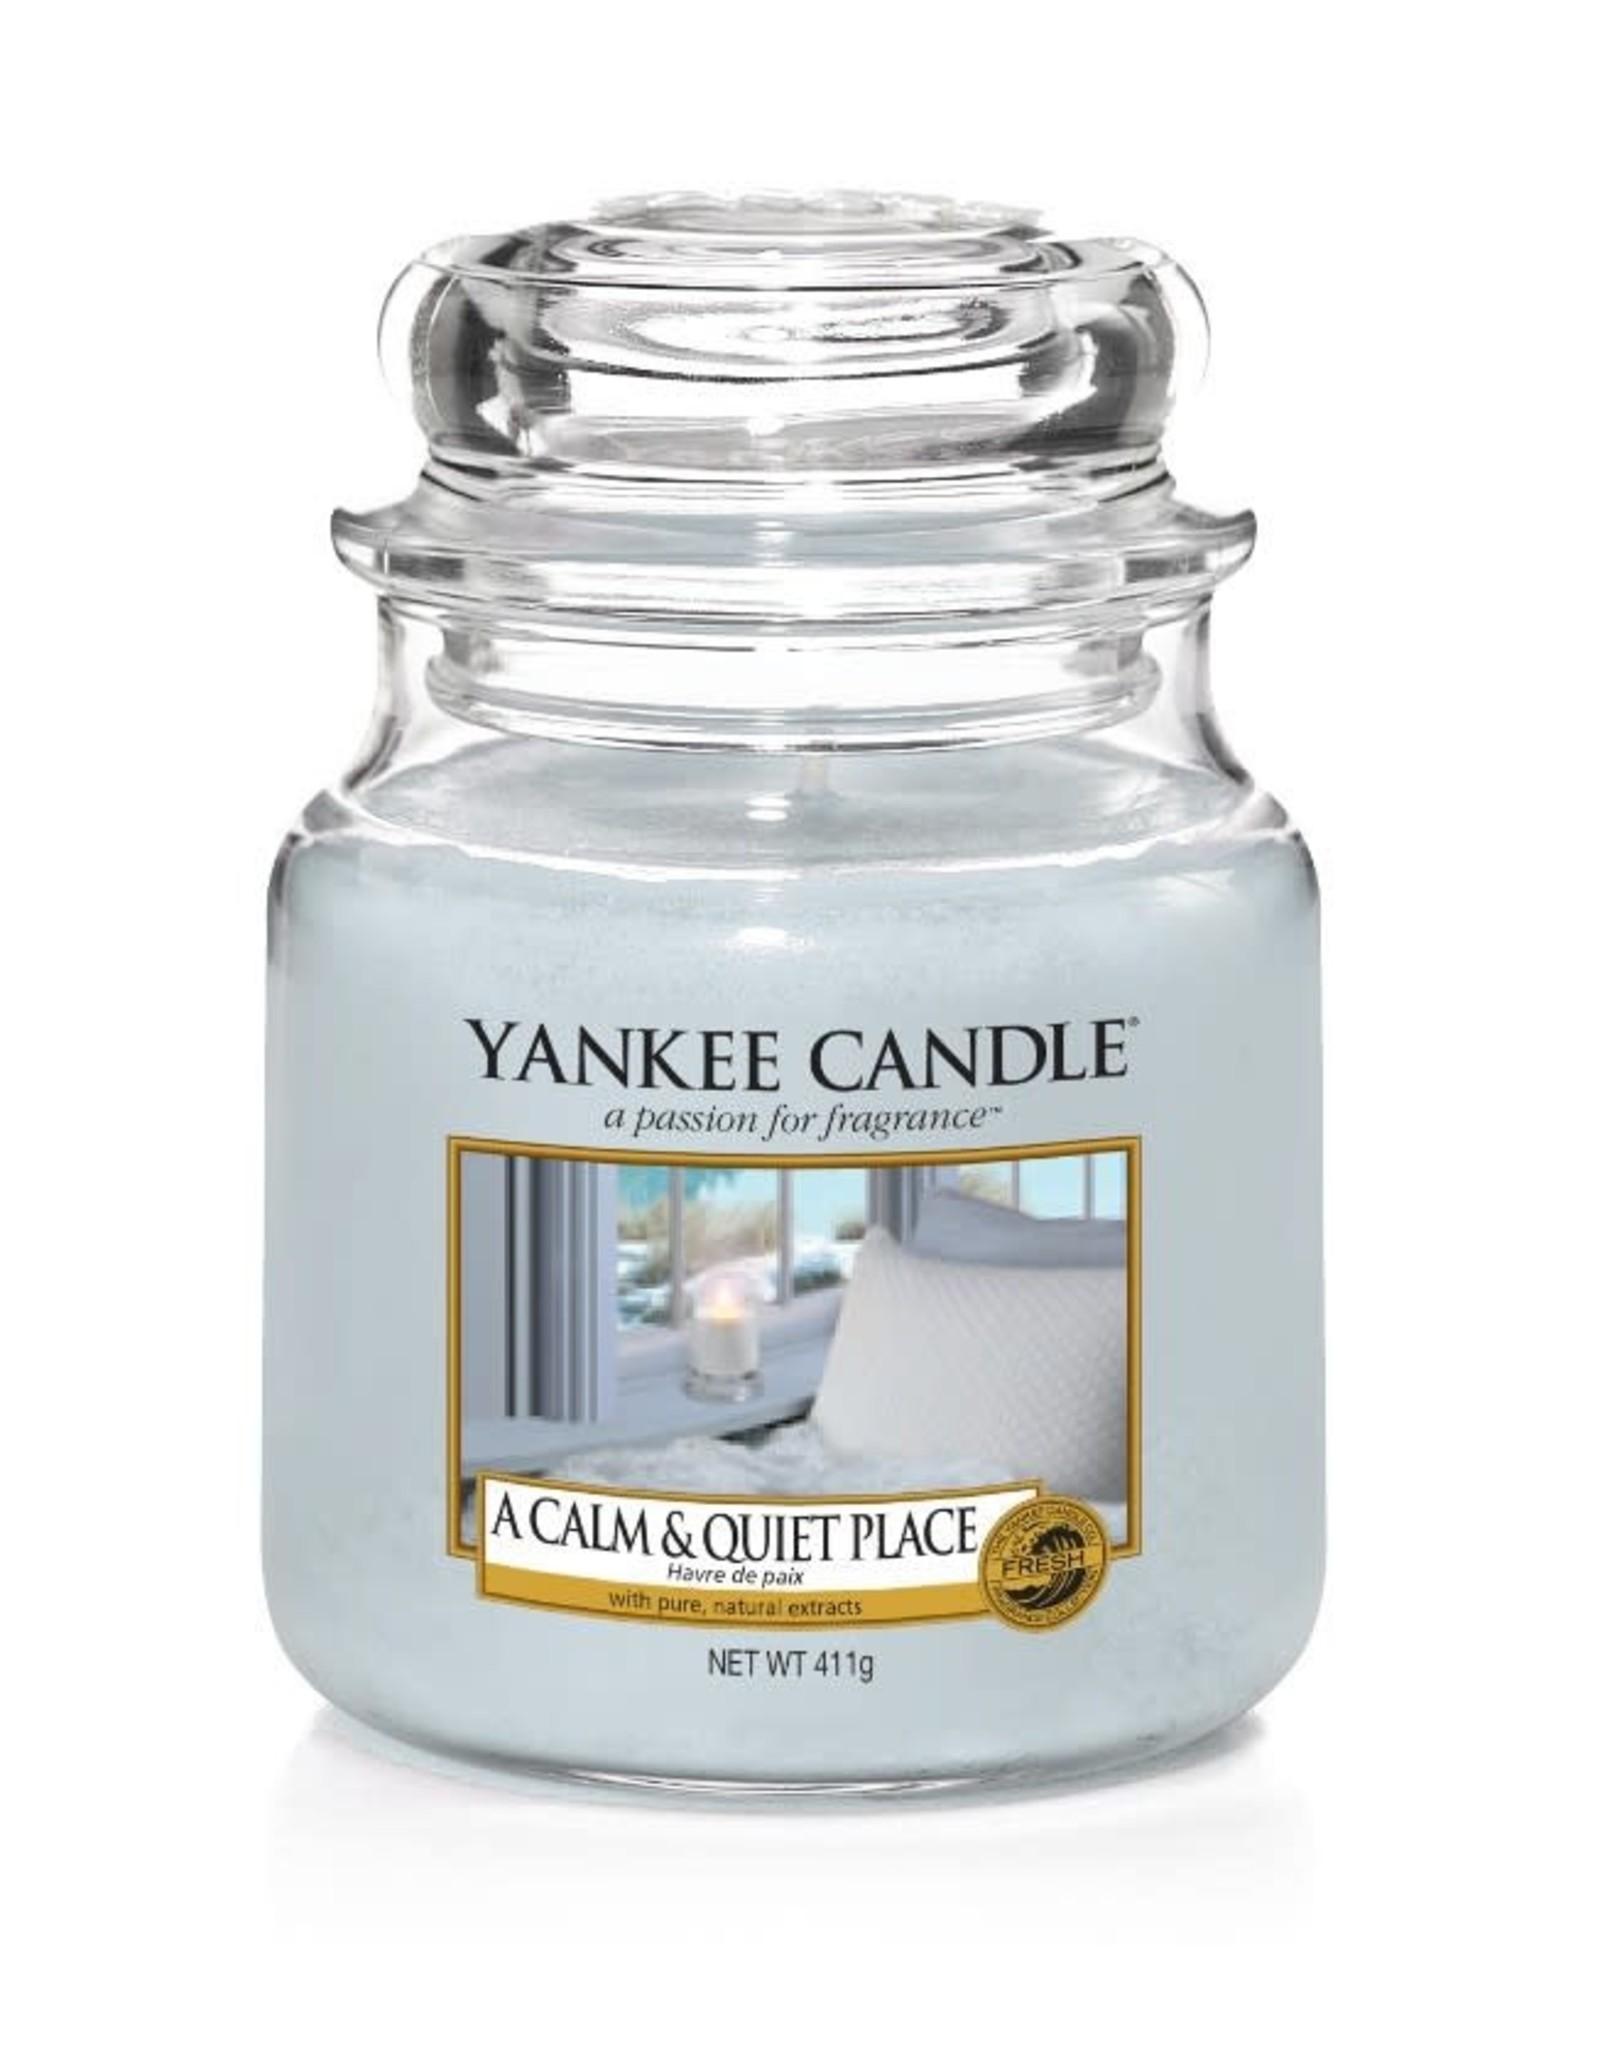 Yankee Candle A Calm & Quiet place Yankee Candle Medium